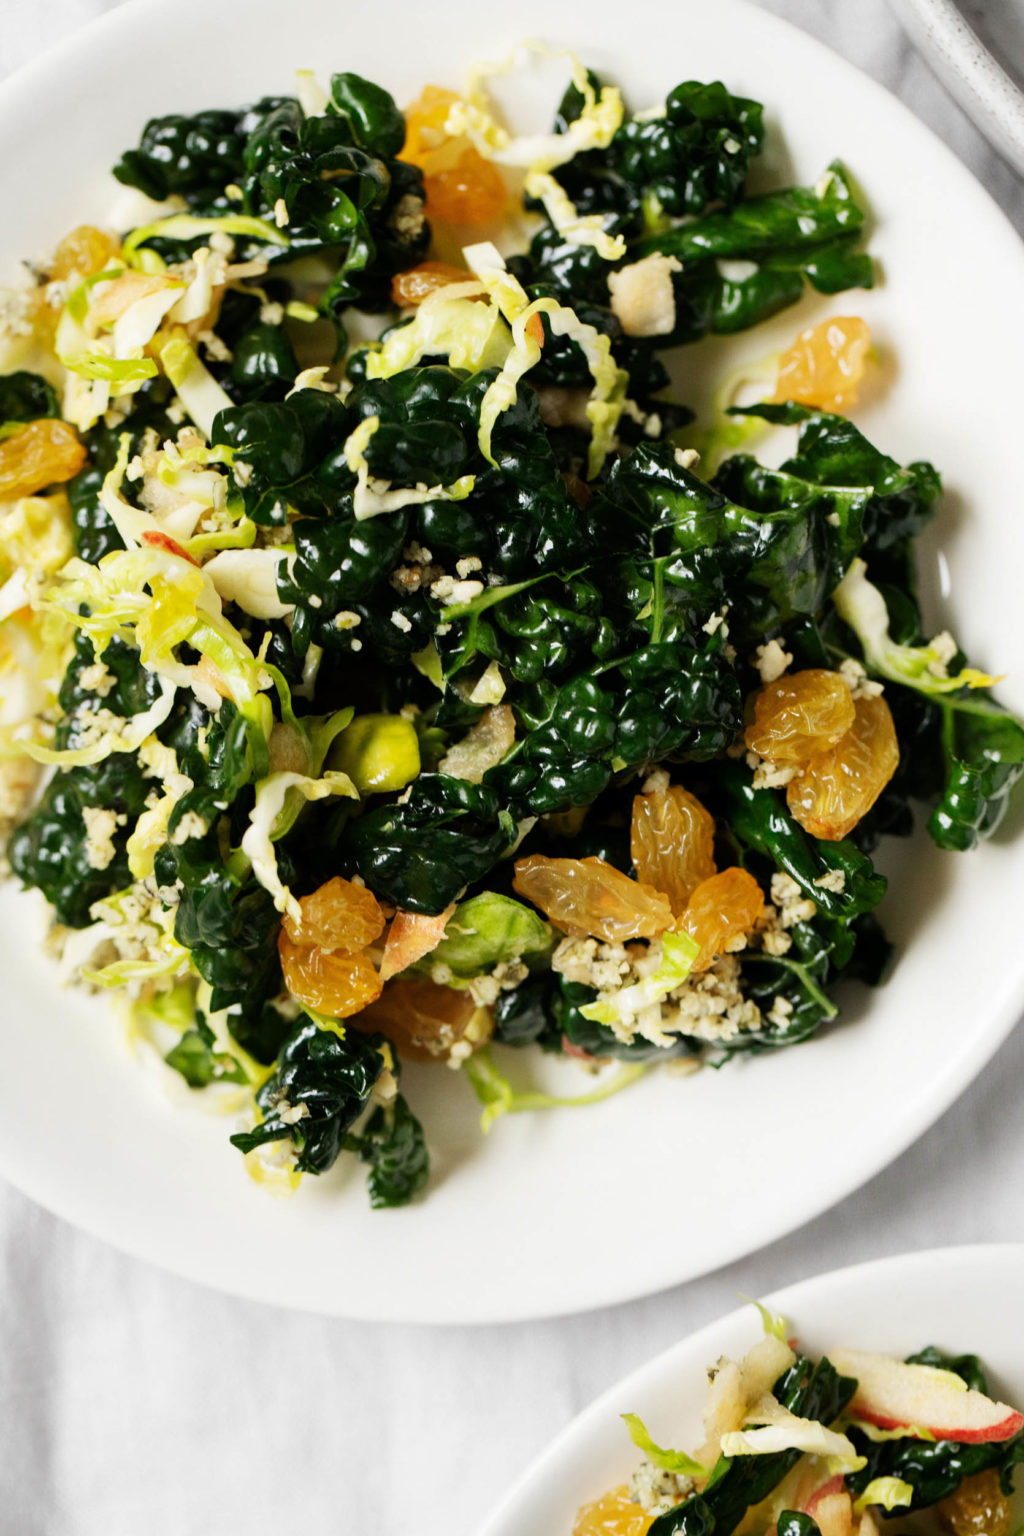 A zoomed in photograph of a serving plate, which is topped with a Brussels sprout kale salad.